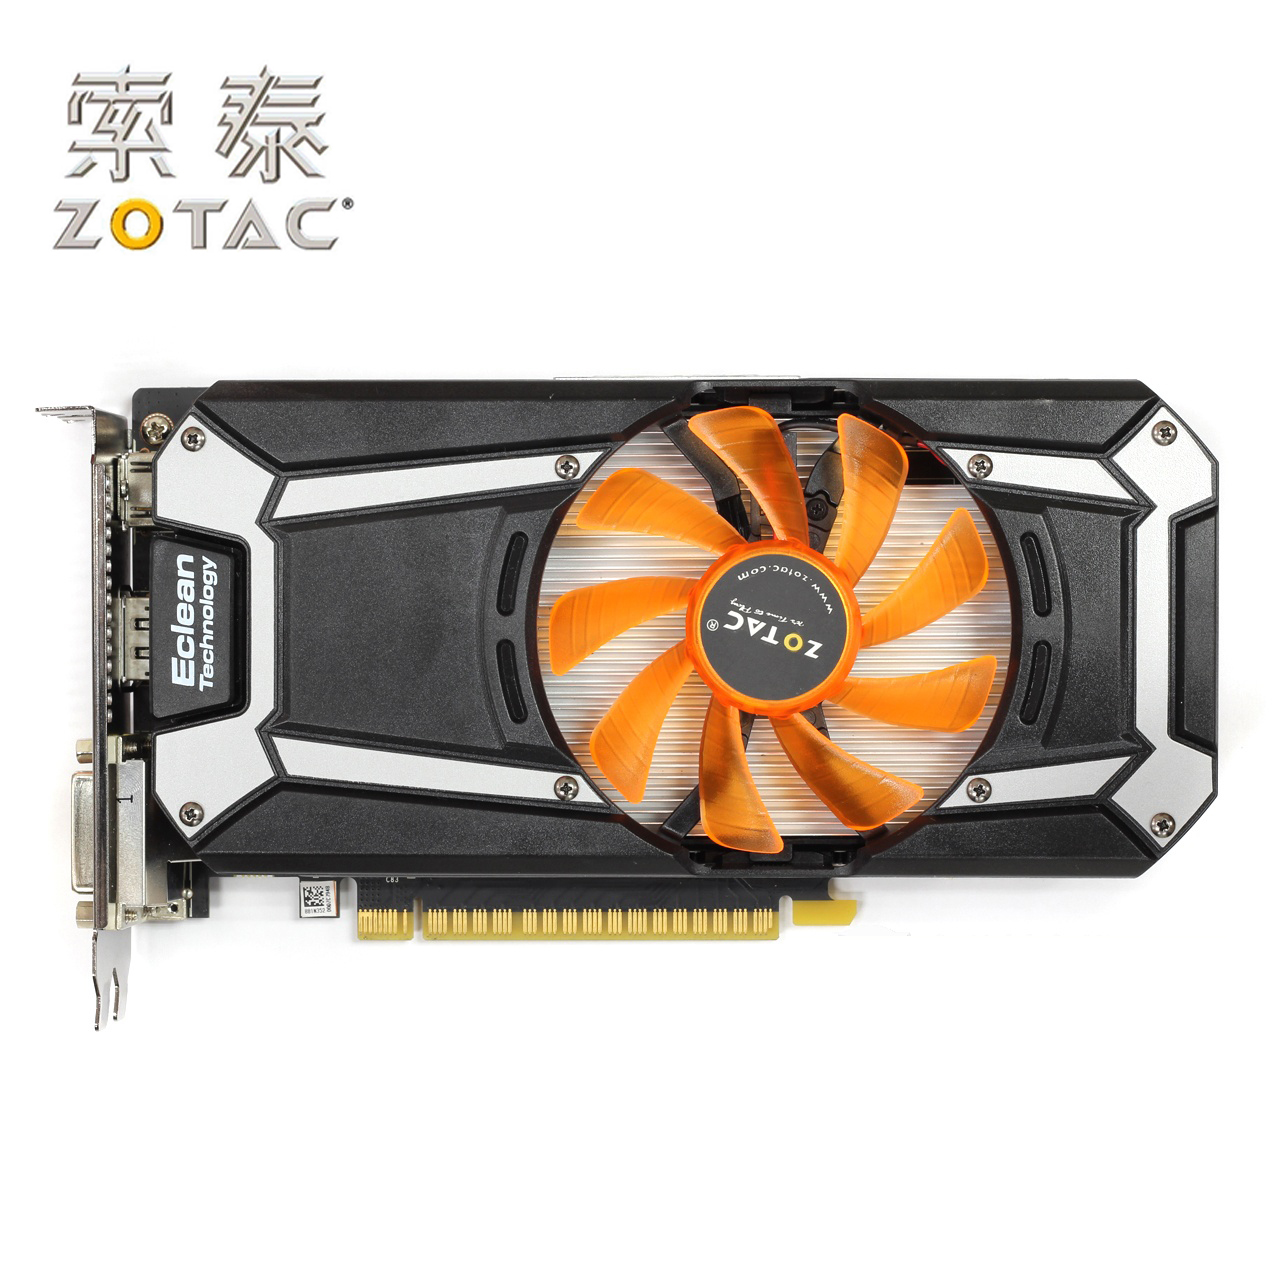 Original ZOTAC GeForce GTX 750Ti-1GD5 Graphics Card Thunder HA For NVIDIA GTX750 GT700 1GD5 1G Video Cards 6000MHz GDDR5 Used yeston sound free nvidia gt710 1g video card ultra hd gt710 1g ddr3 graphics card for desktop 2 years warranty